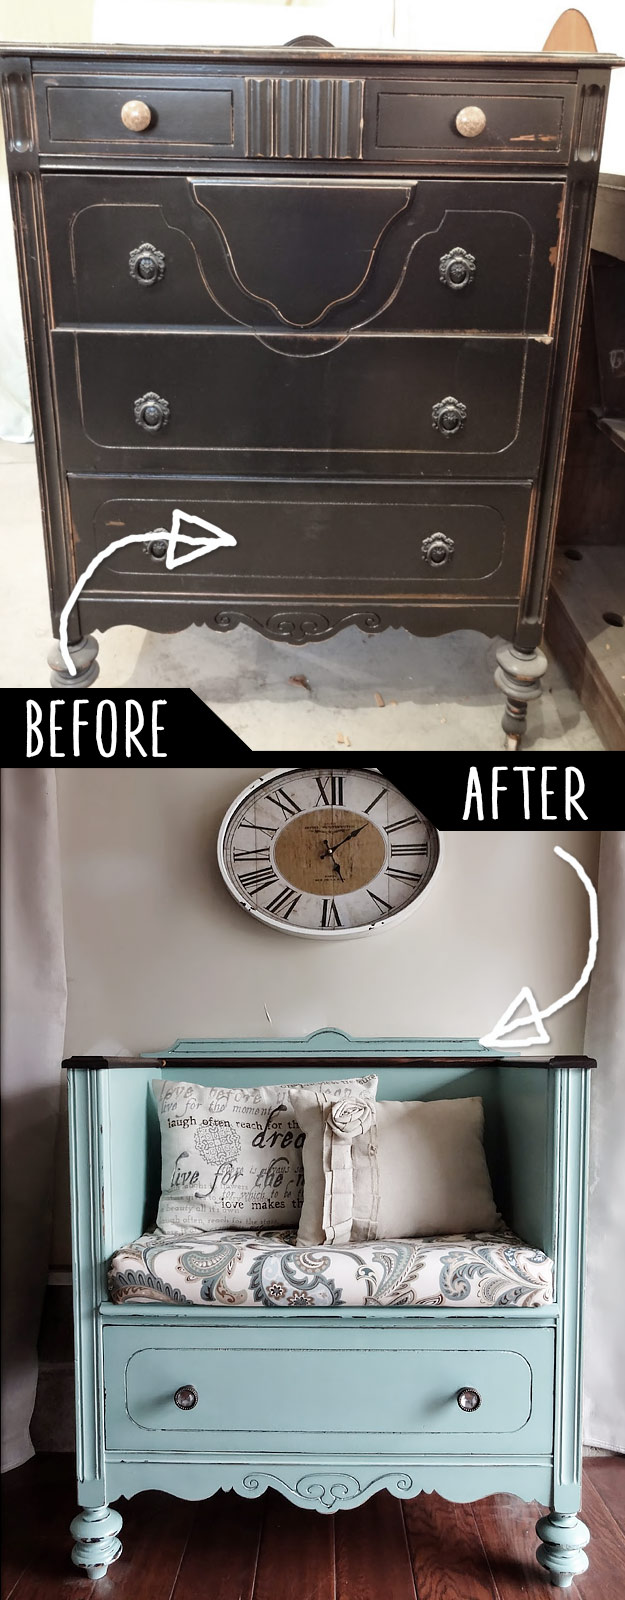 DIY Furniture Hacks   Unused Old Dresser Turned Bench   Cool Ideas for Creative Do It Yourself Furniture   Cheap Home Decor Ideas for Bedroom, Bathroom, Living Room, Kitchen #diy